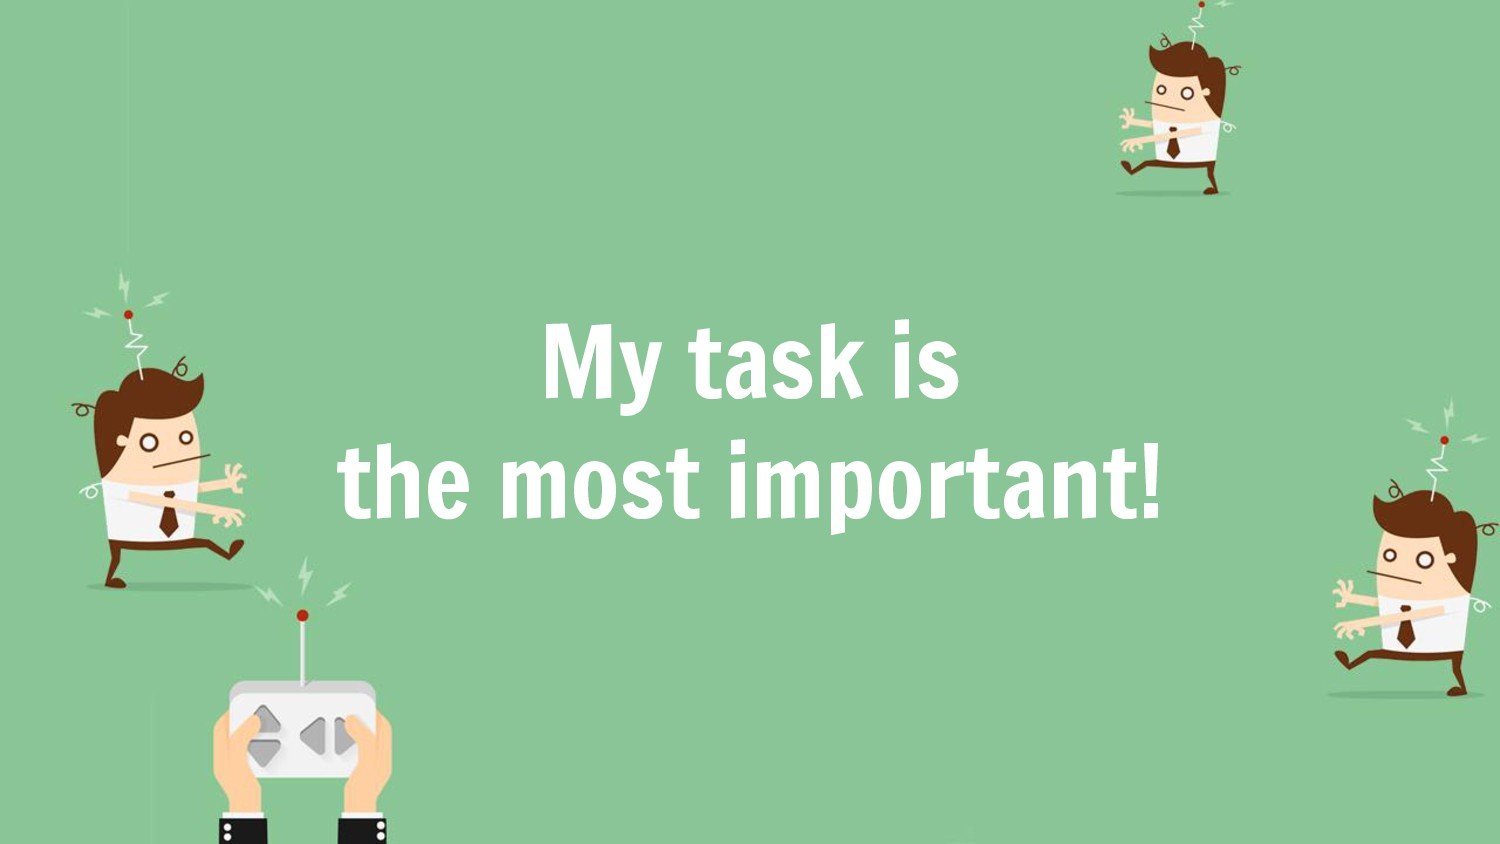 My task is the most important!